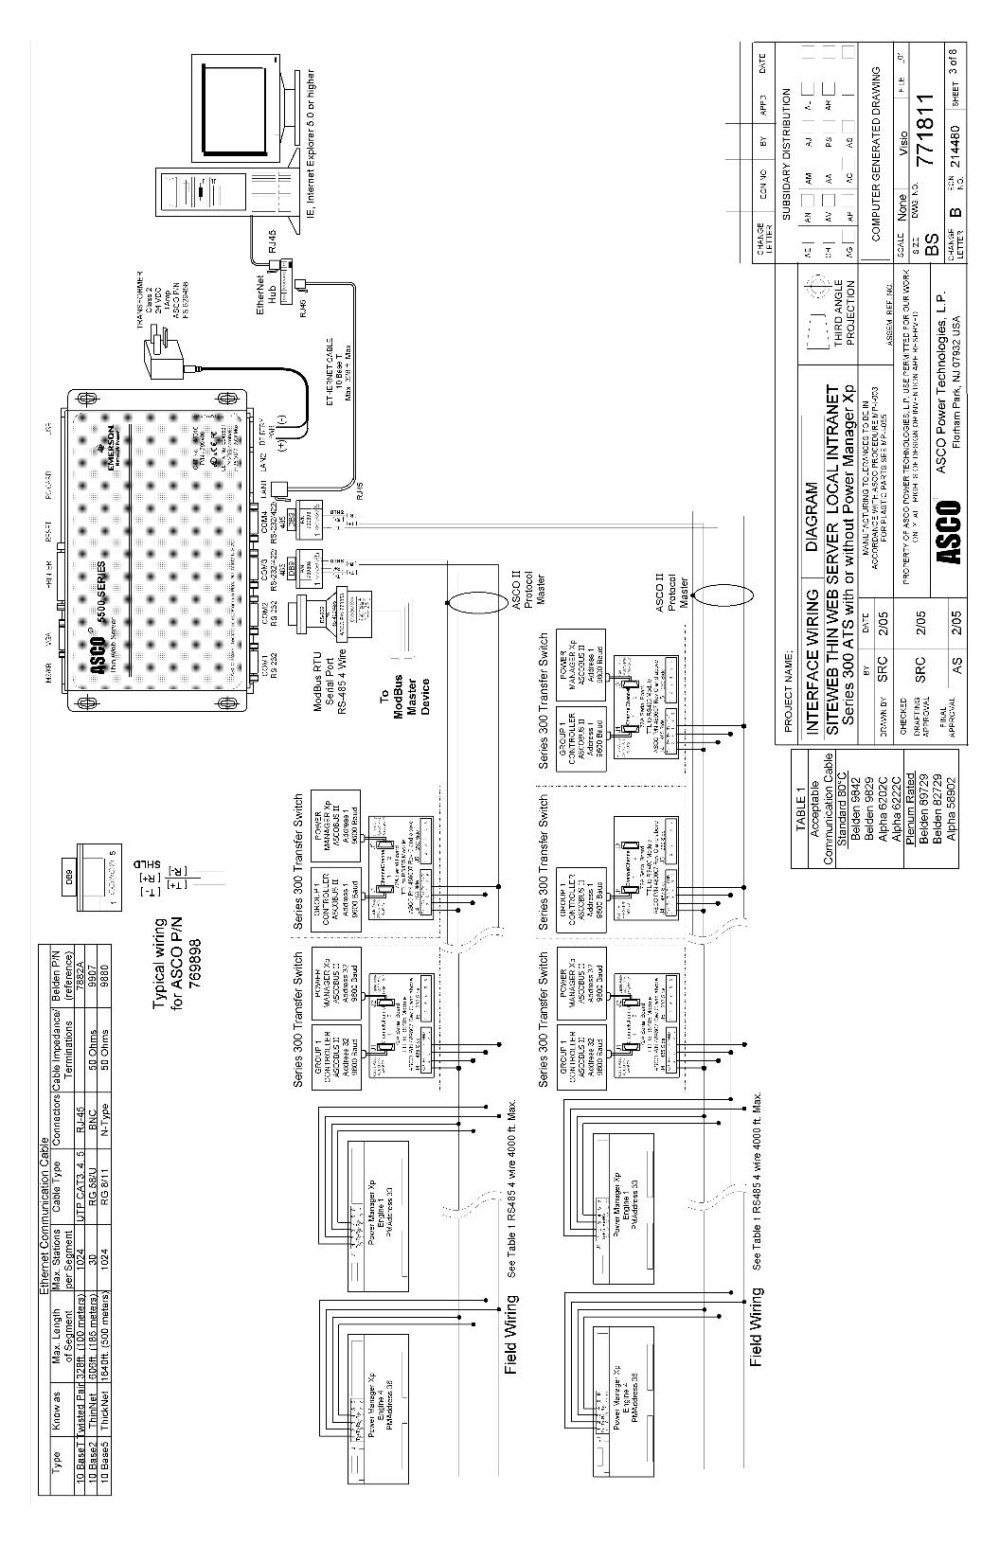 medium resolution of asco 7000 series ats wiring diagram collection emerson 5500 series user manual pdf download inside